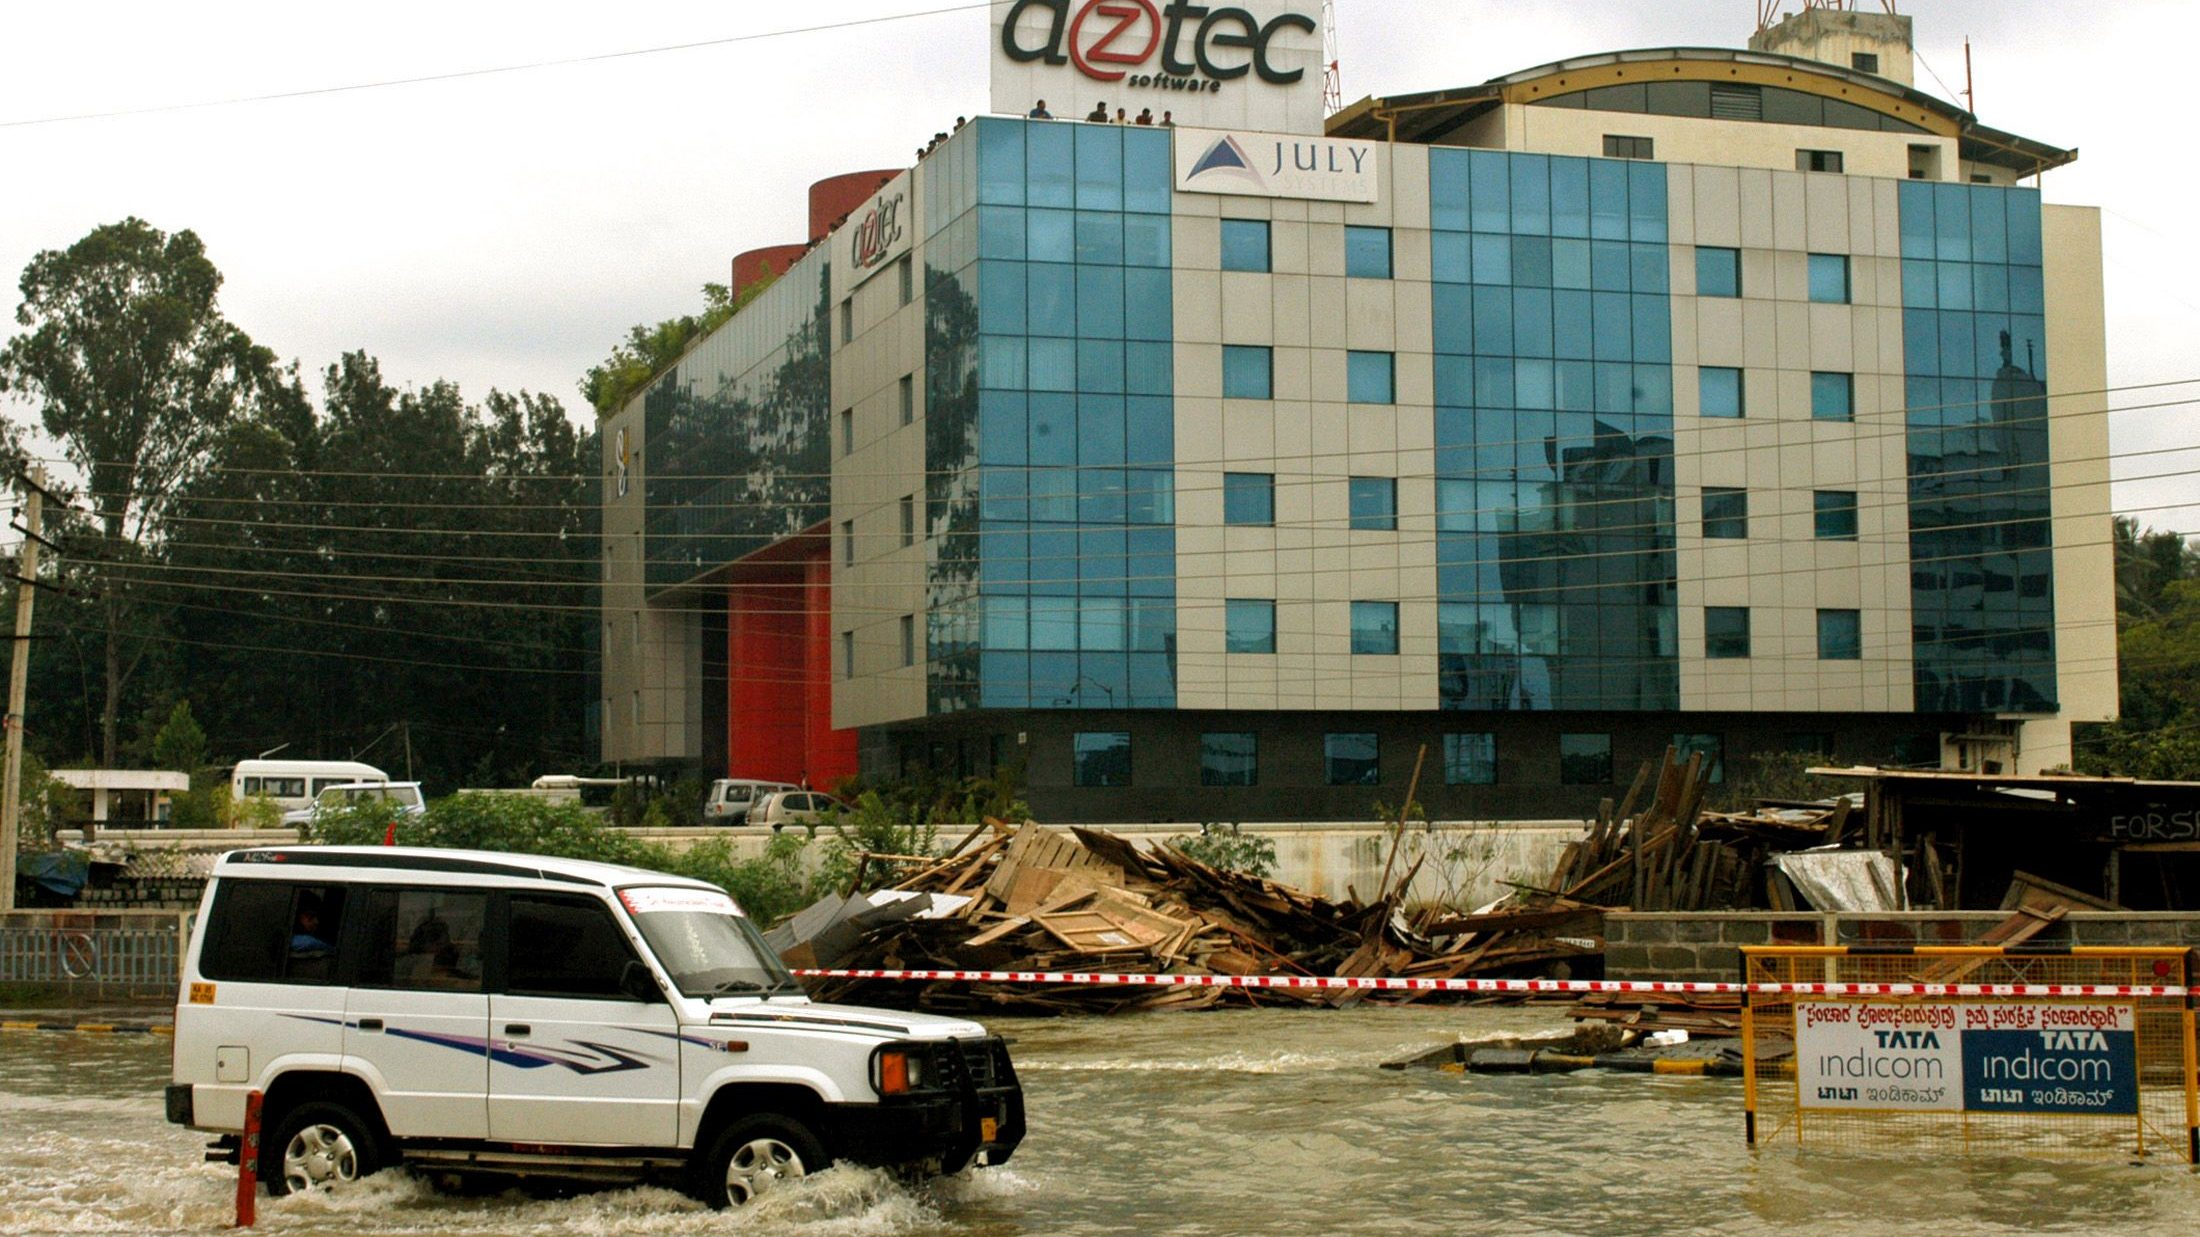 A vehicle moves on a flooded road in the southern Indian city of Bangalore, October 26, 2005. Police in India's technology capital, Bangalore, have urged motorists to stay off the city's roads as storms caused flooding and uprooted trees, but business was largely unaffected, officials said on Wednesday. REUTERS/Jagadeesh Nv - RP2DSFIFWNAB